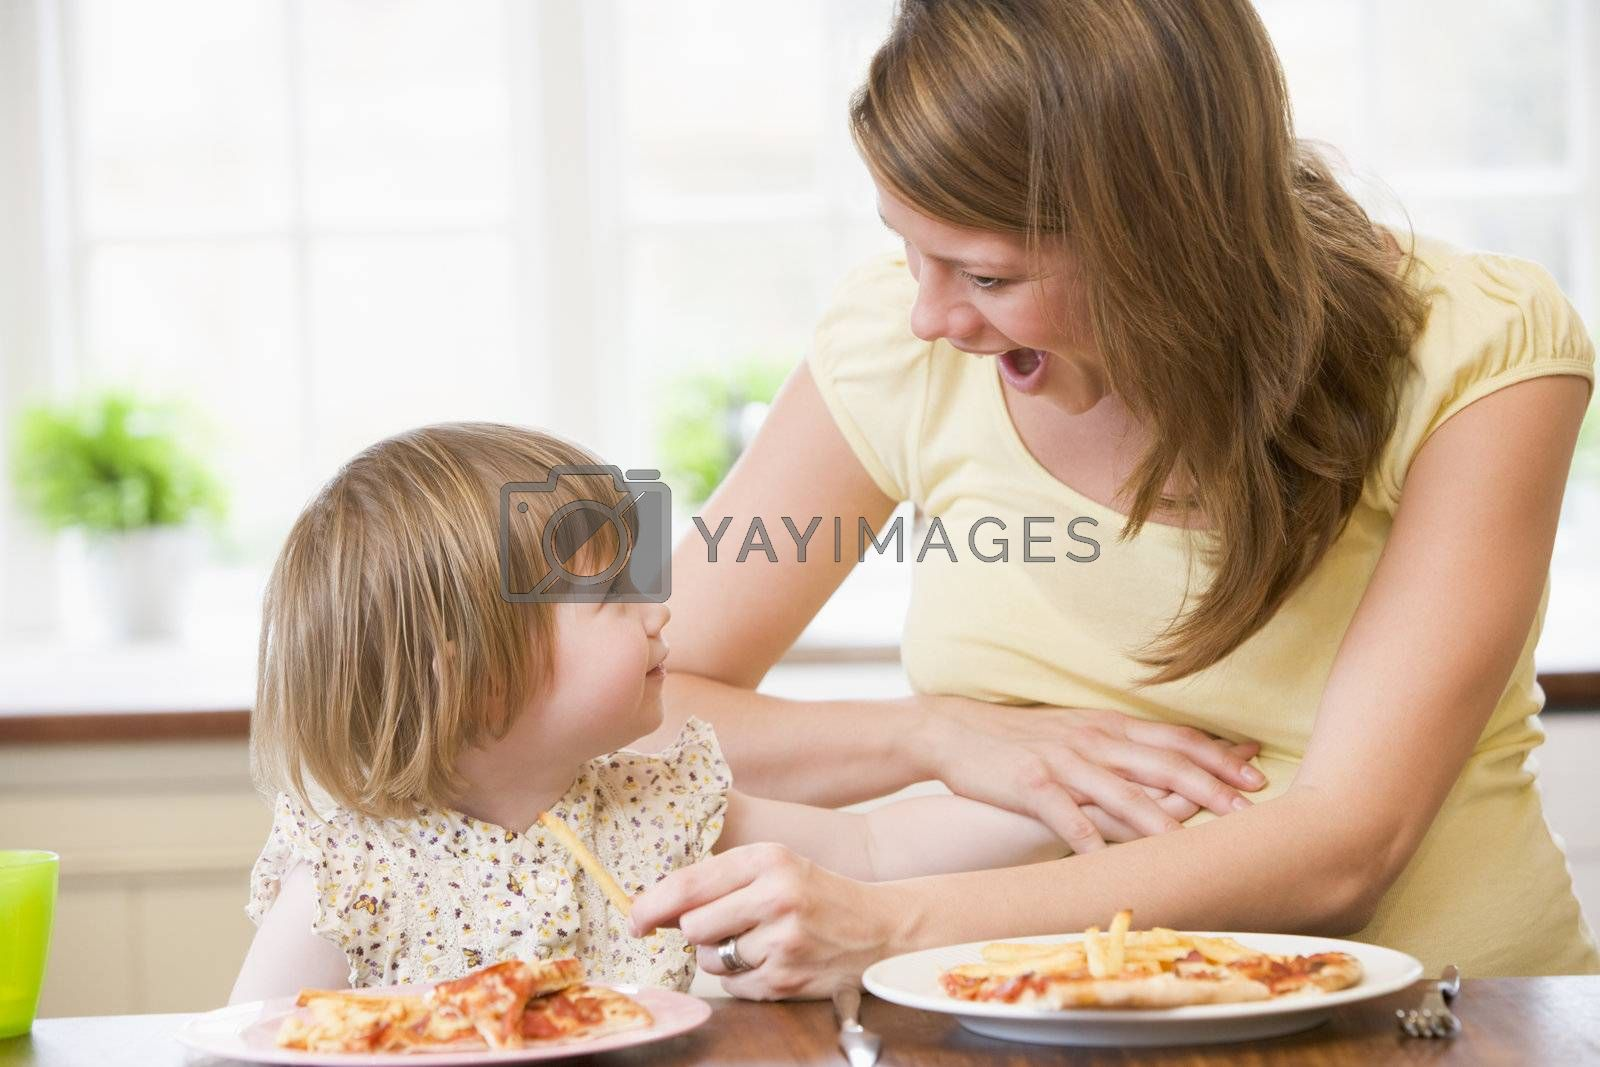 Pregnant mother with daughter touching belly eating French fries by MonkeyBusiness